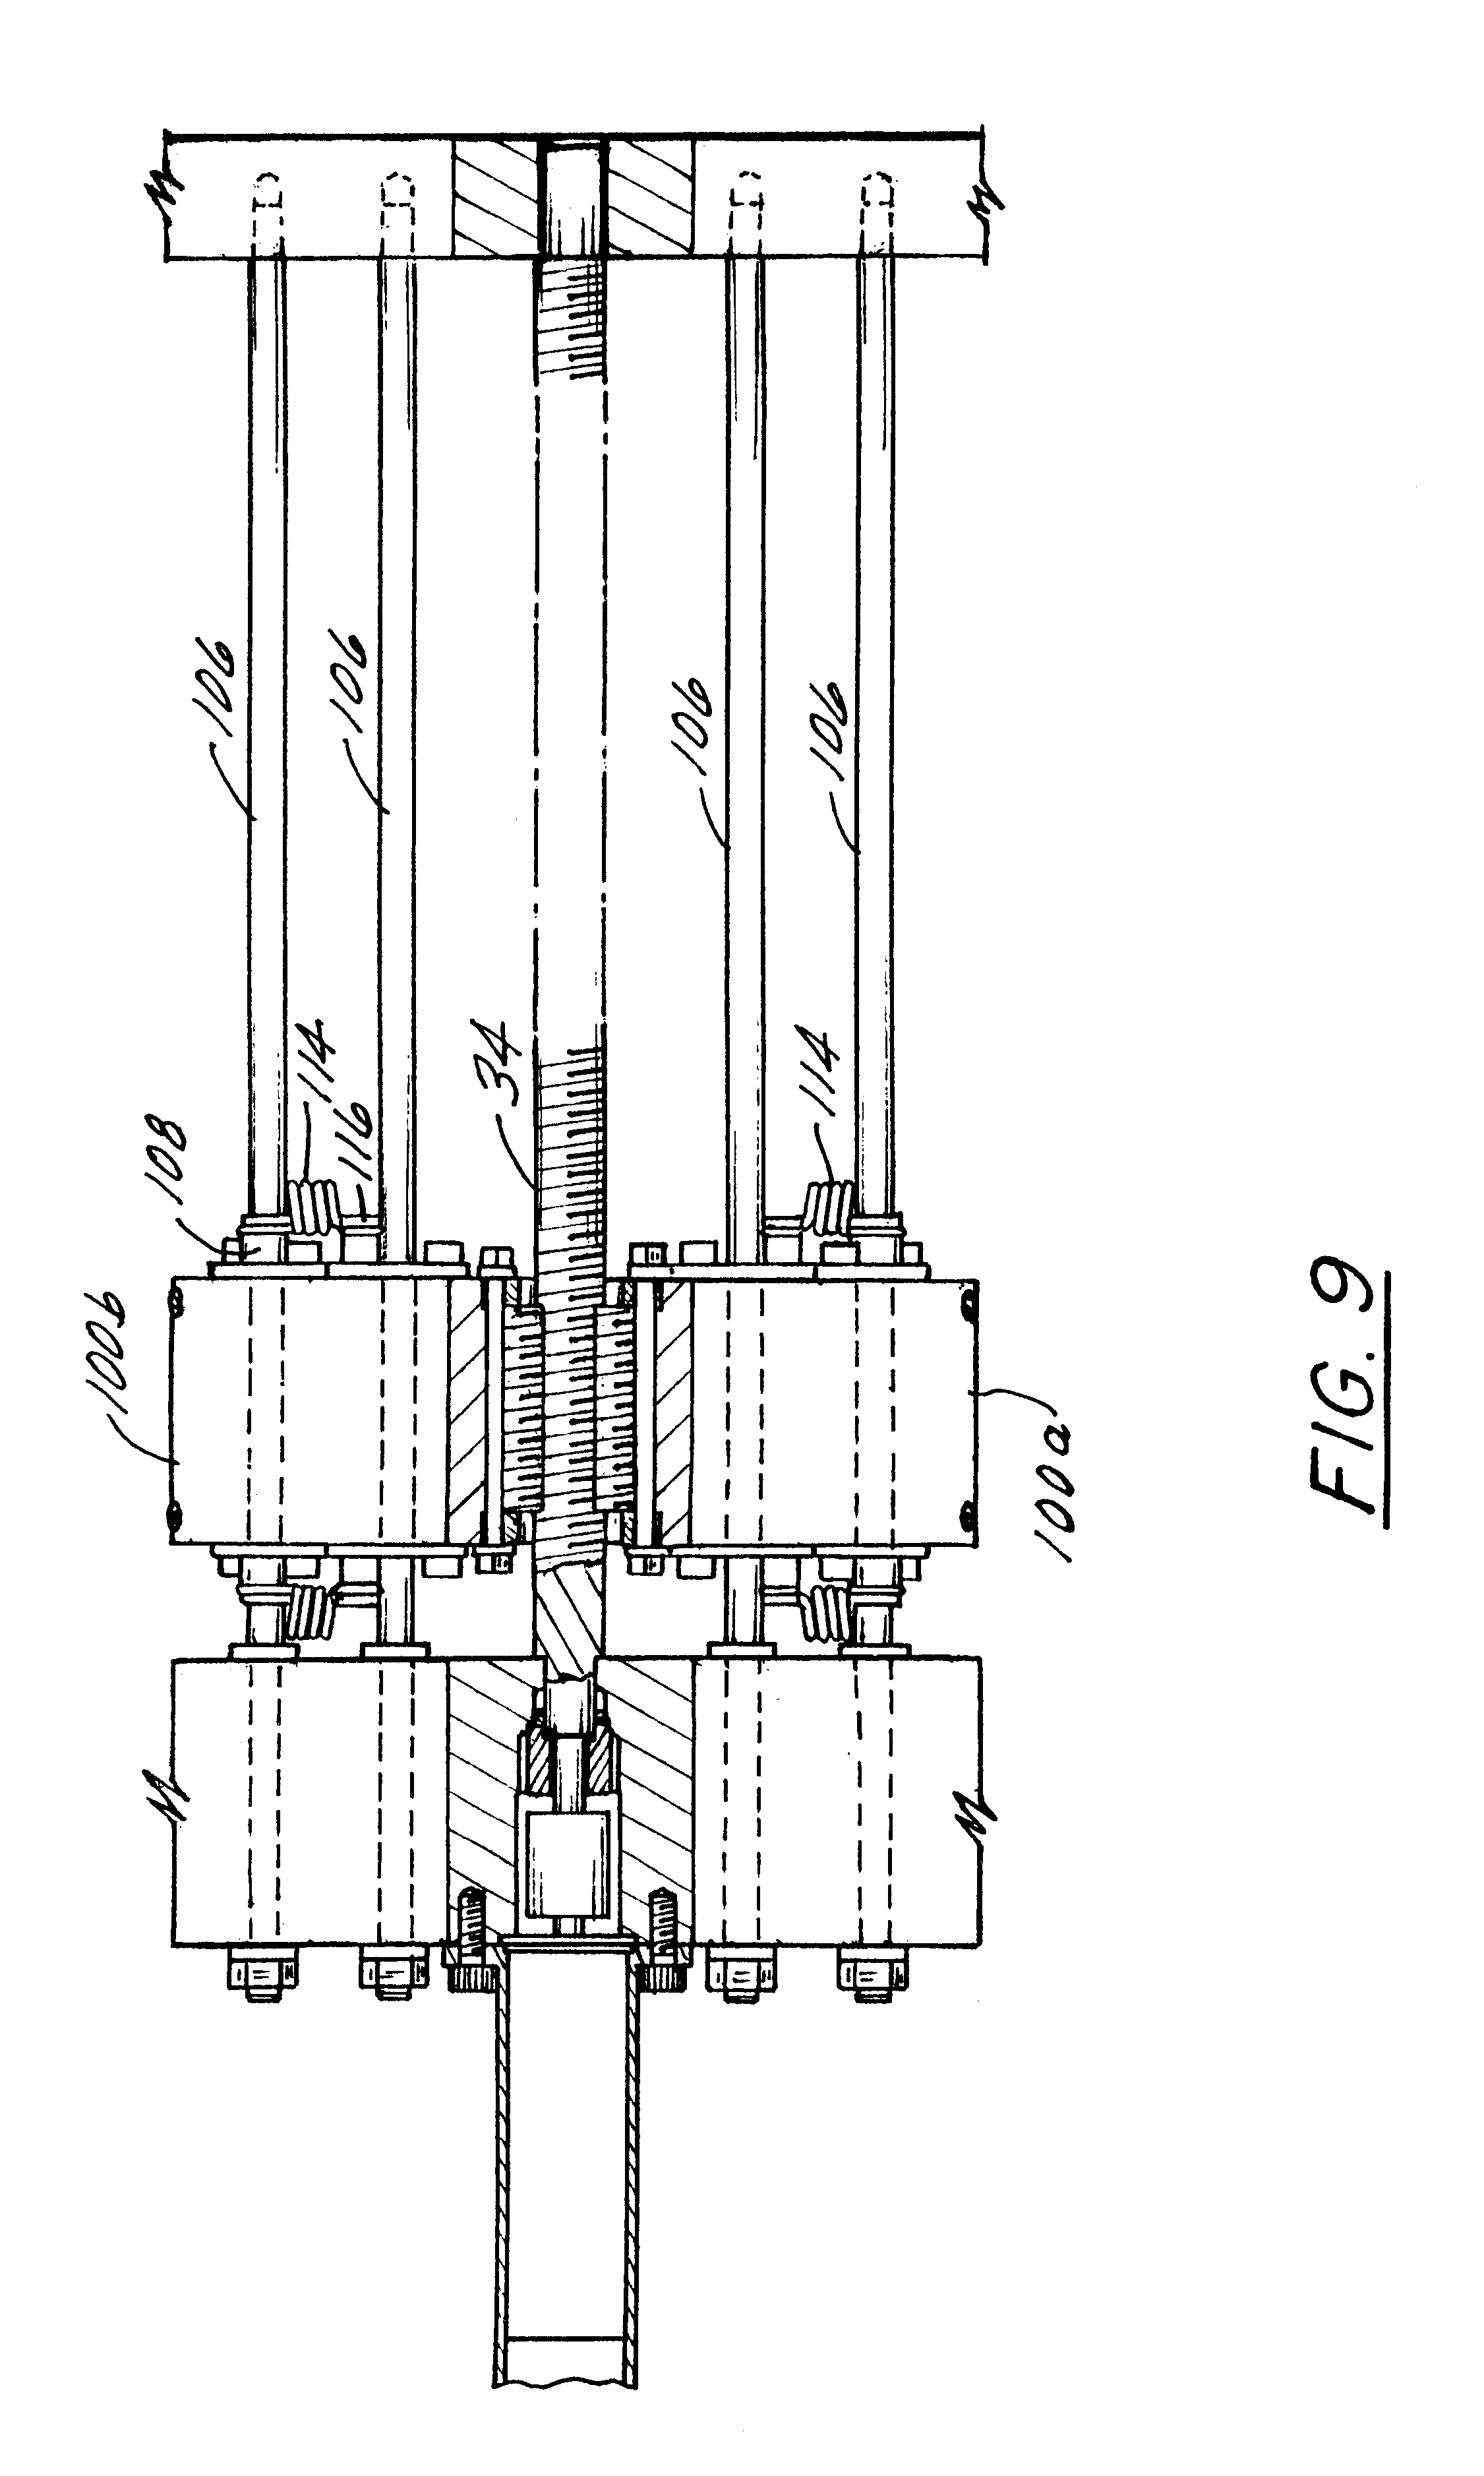 patent us6253843 - electric safety valve actuator